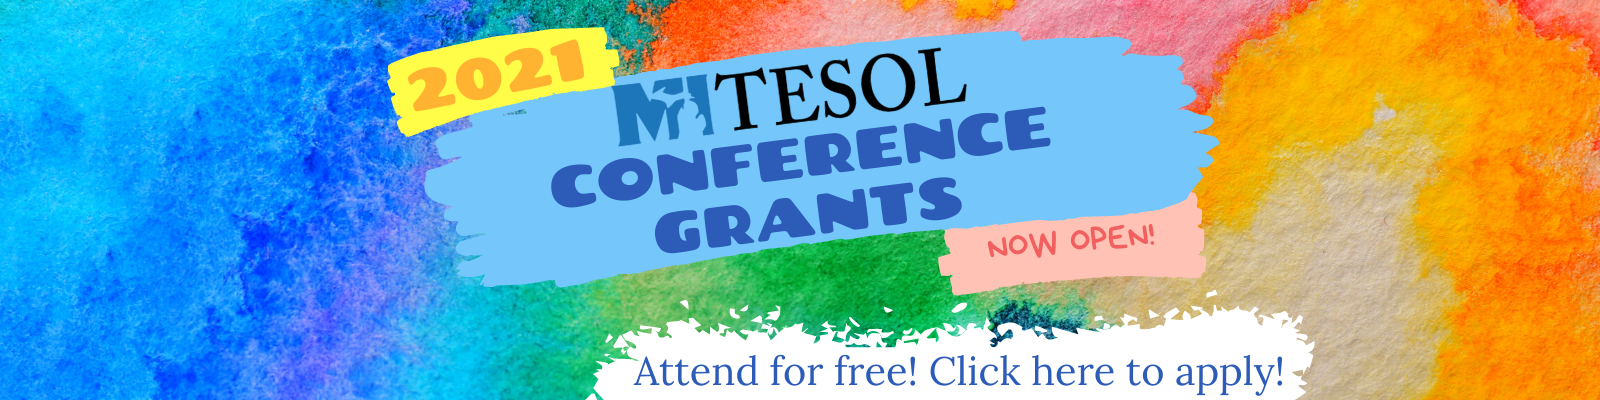 Click here to apply for a 2021 MITESOL Conference Grant today!